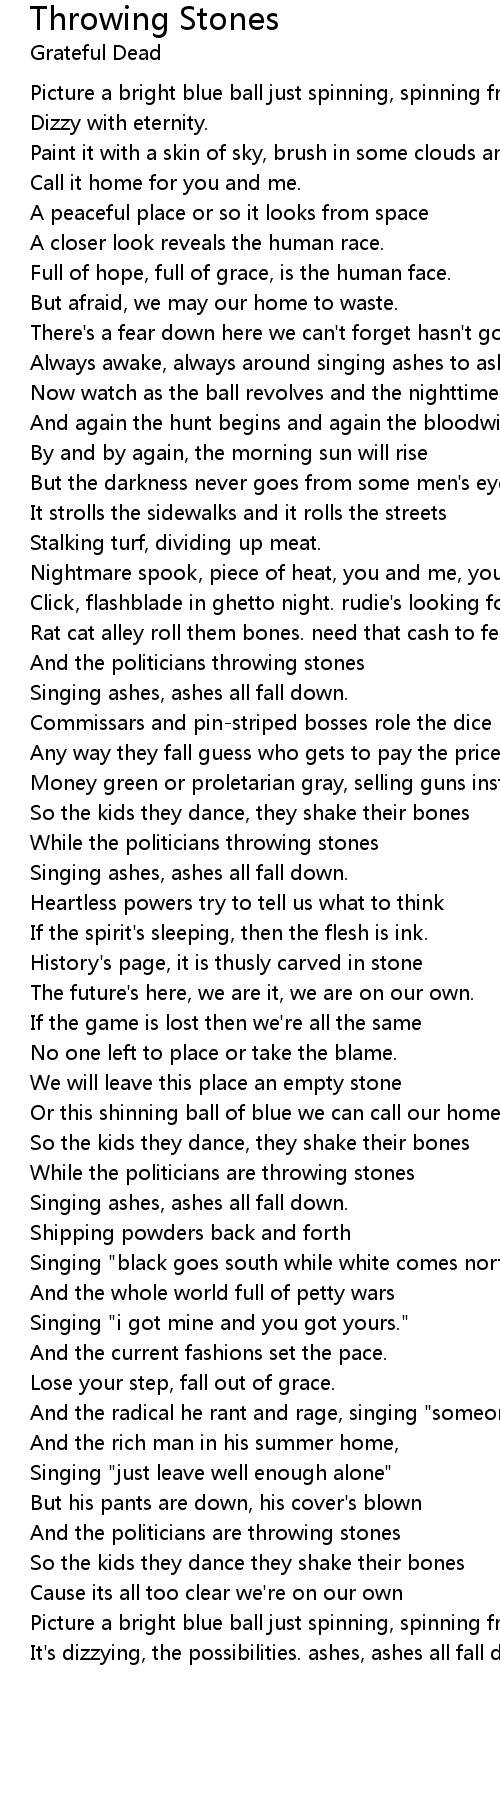 Throwing Stones Lyrics